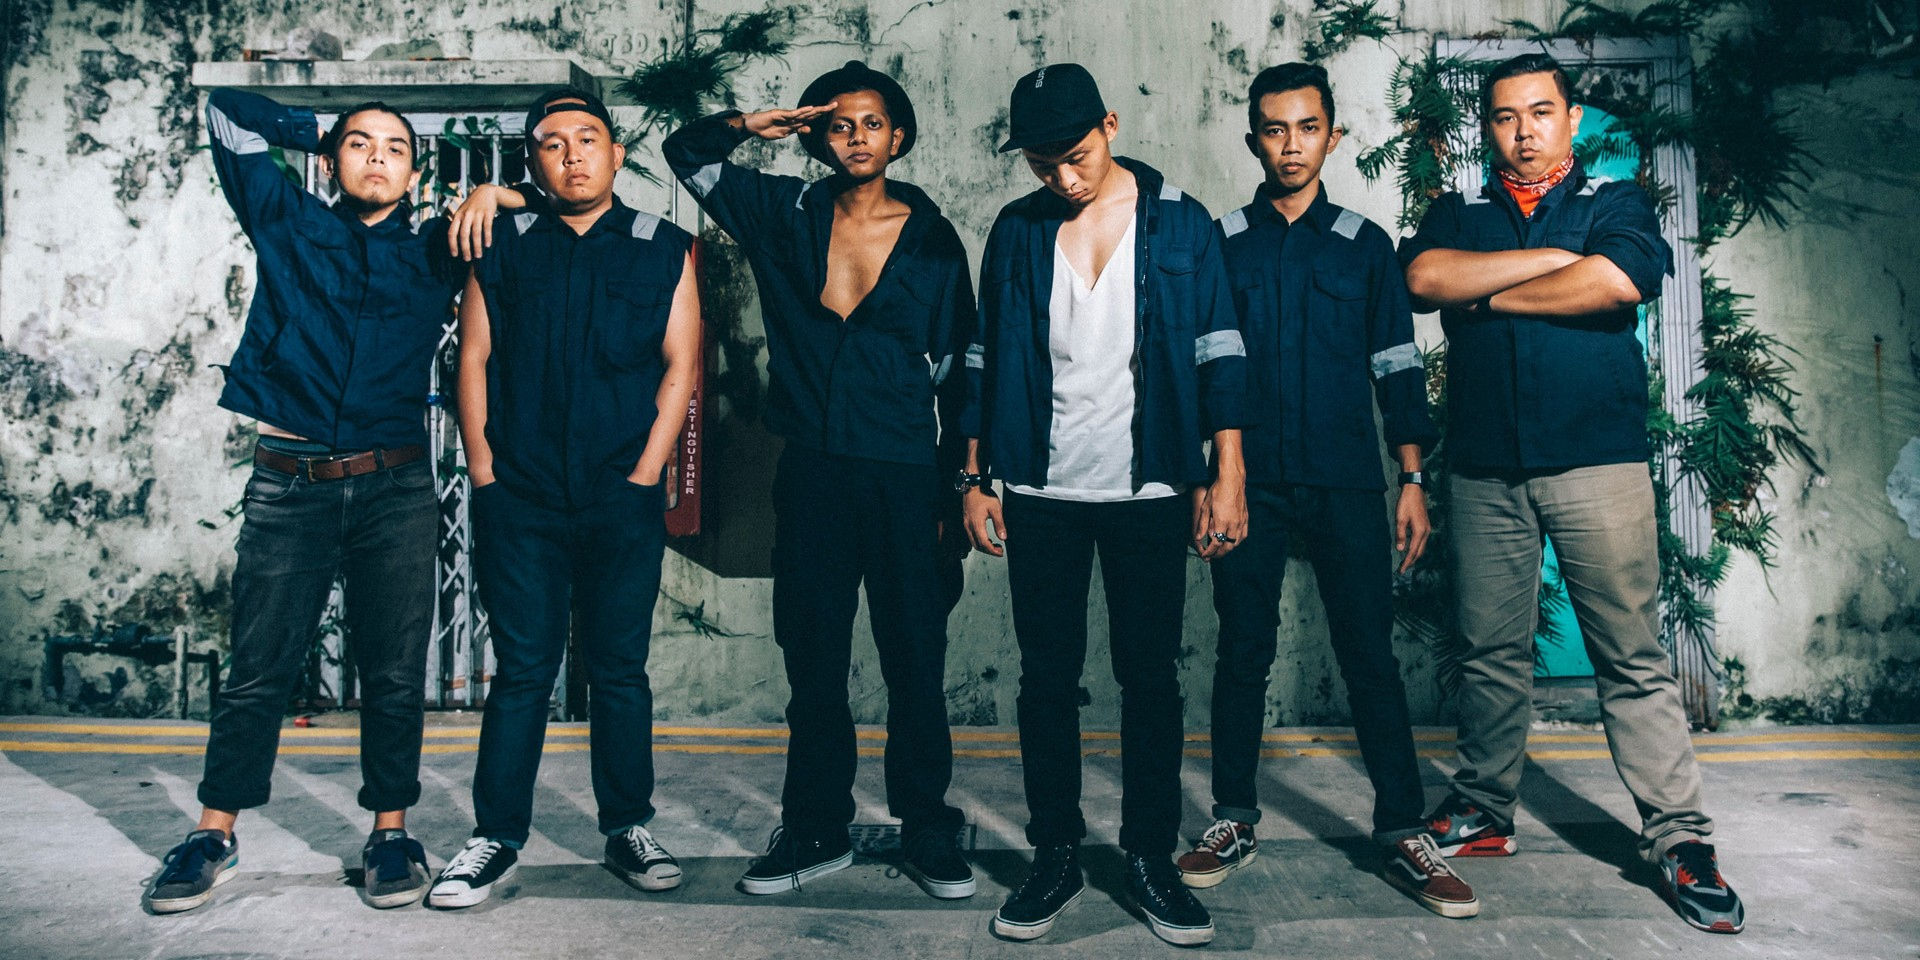 Rap-rock outfit Young releases sophomore album Full Circle